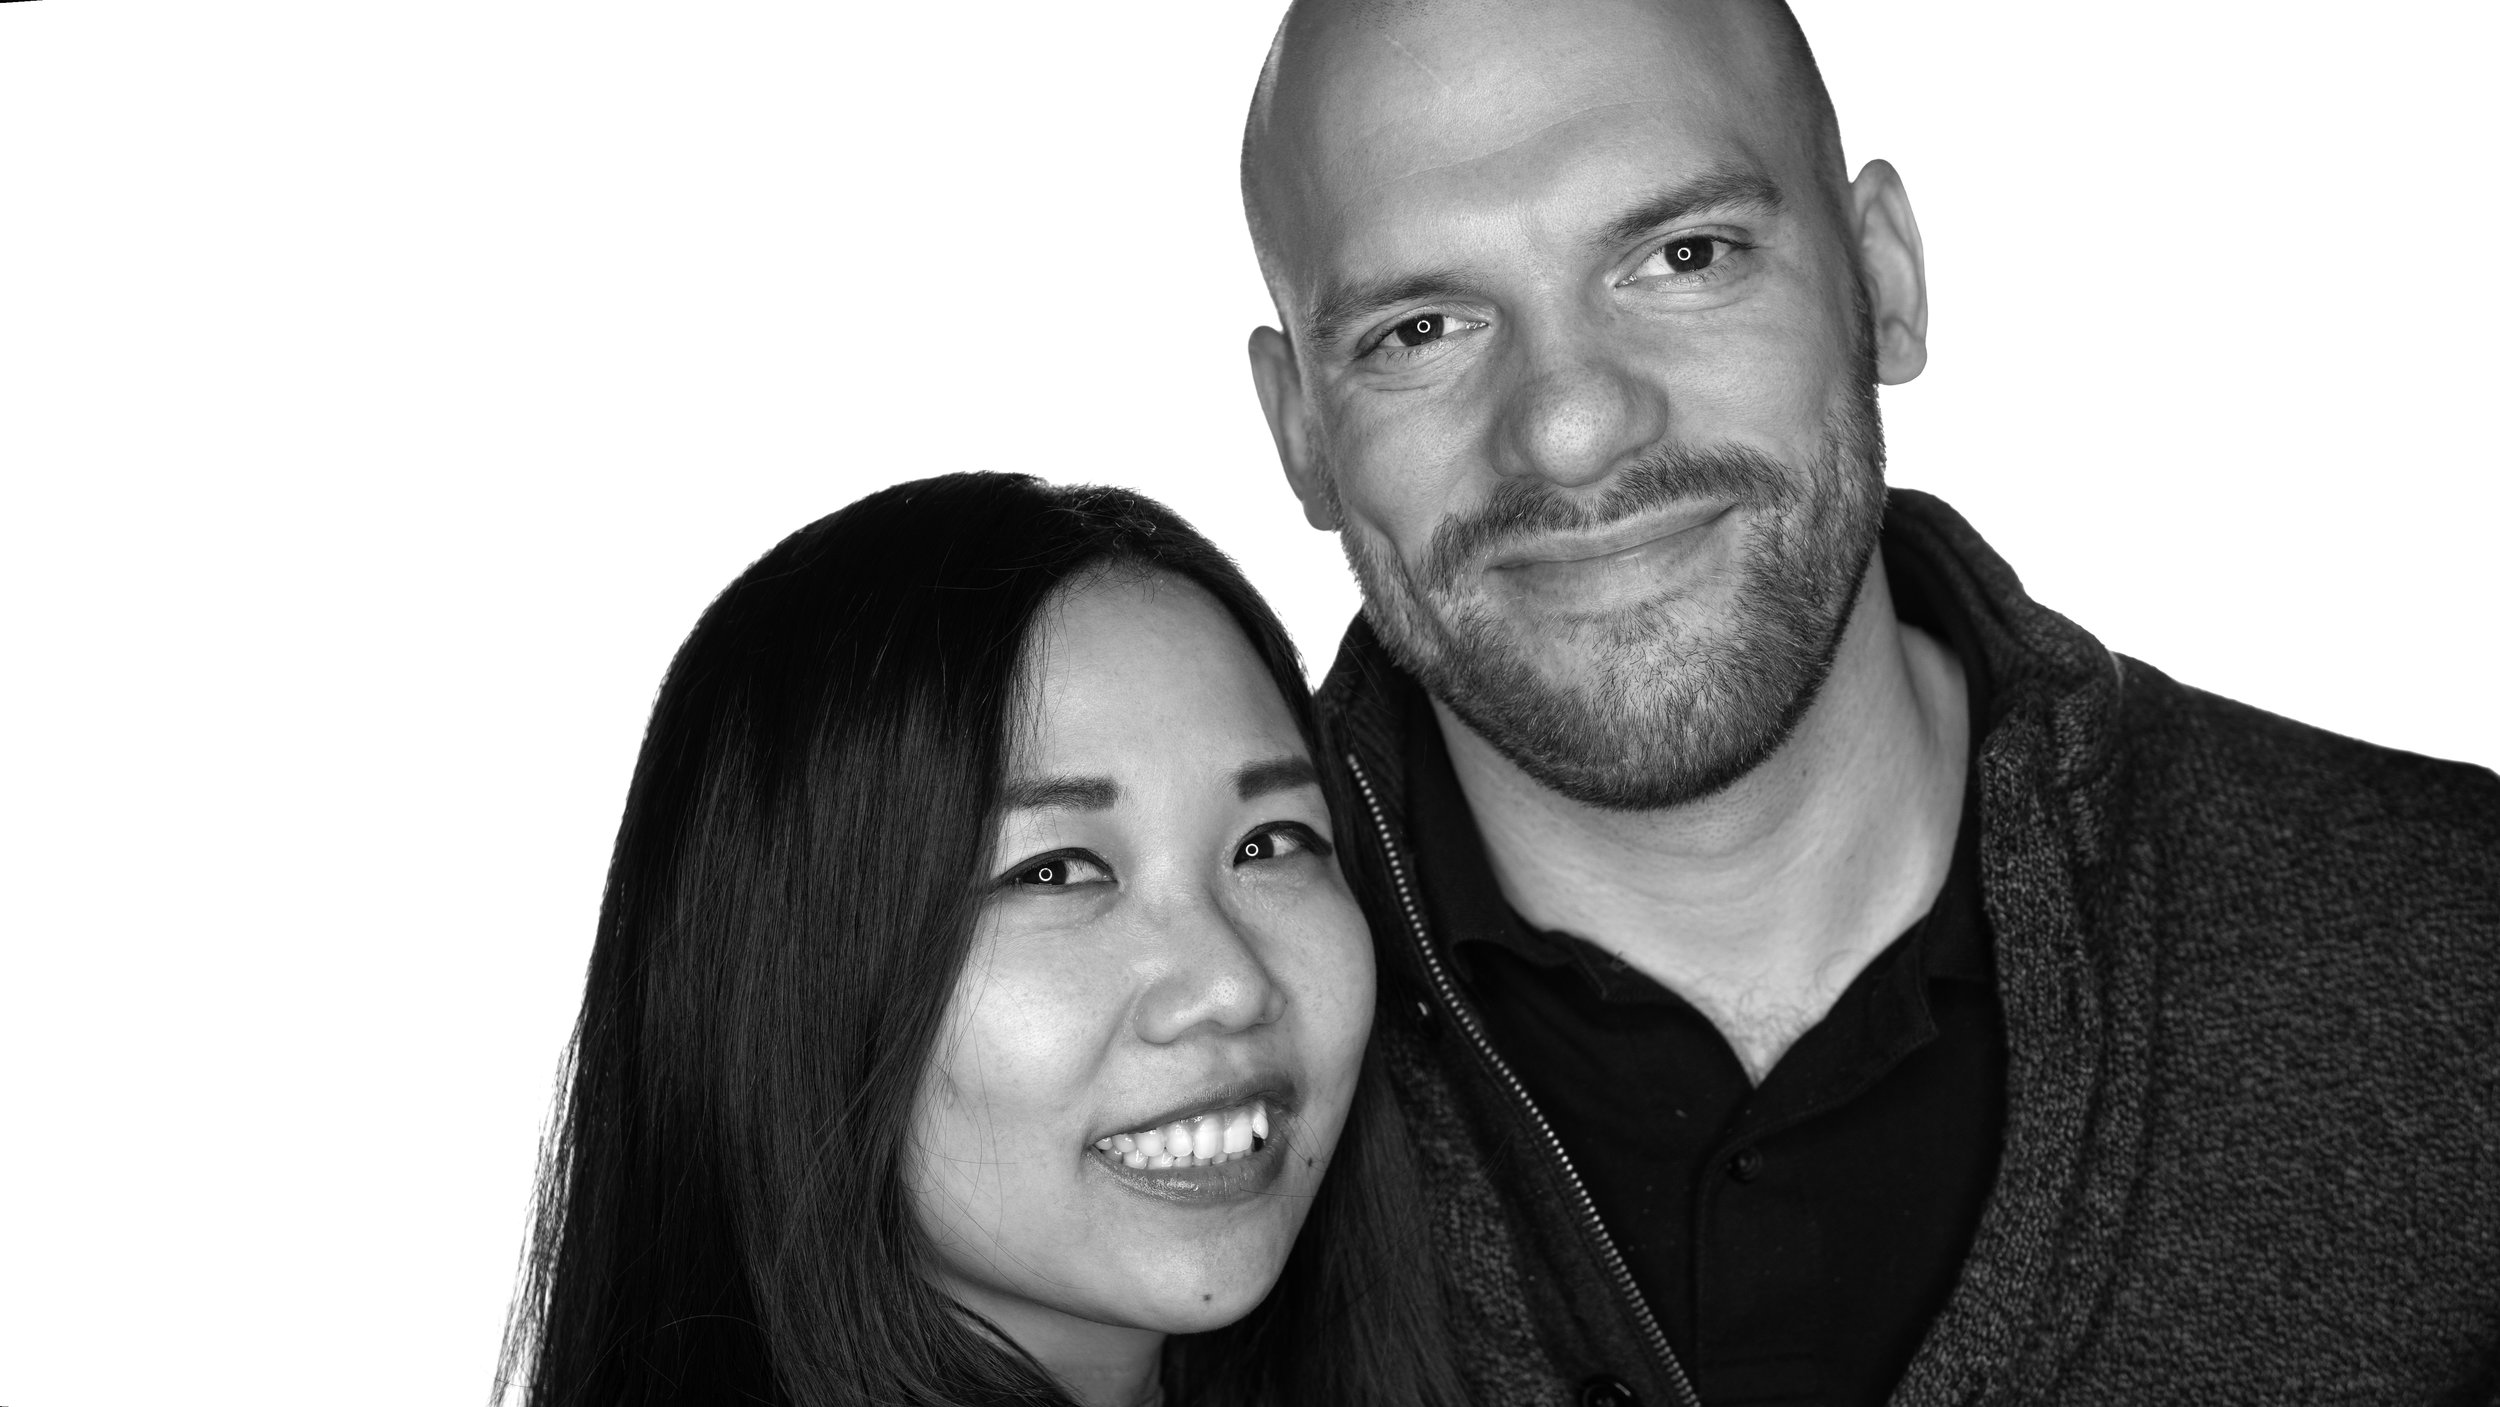 Josh and Julia - B&W.jpg